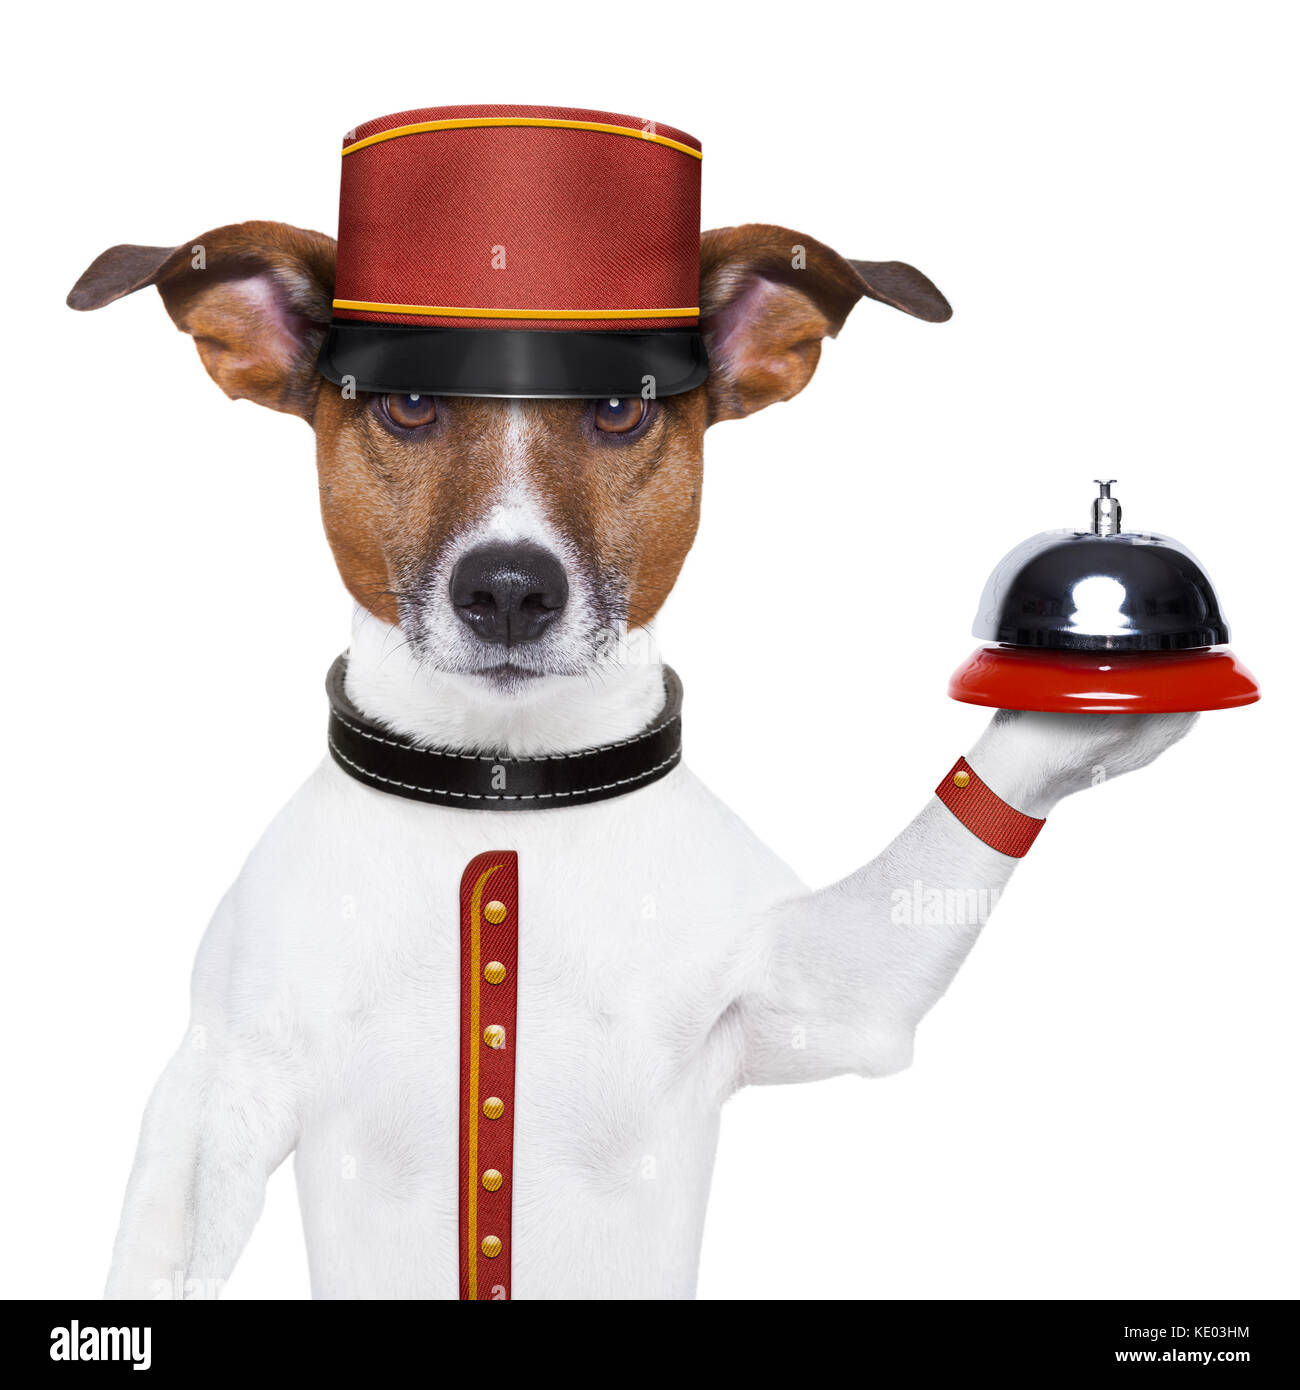 bellboy dog holding a bell with red hat - Stock Image